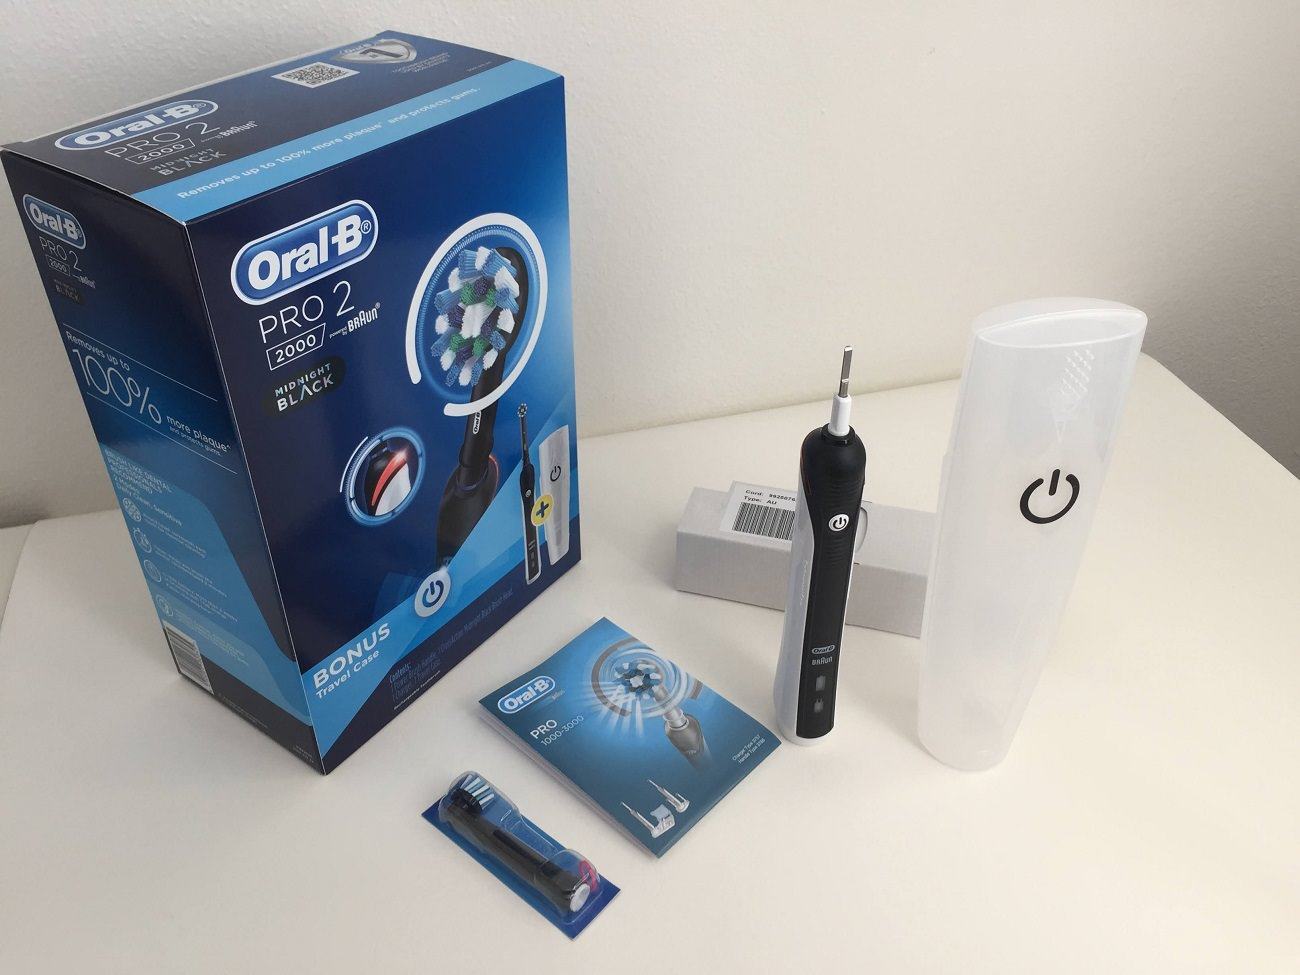 The Oral-B Pro 2 2000 Electric Toothbrush packaging and contents